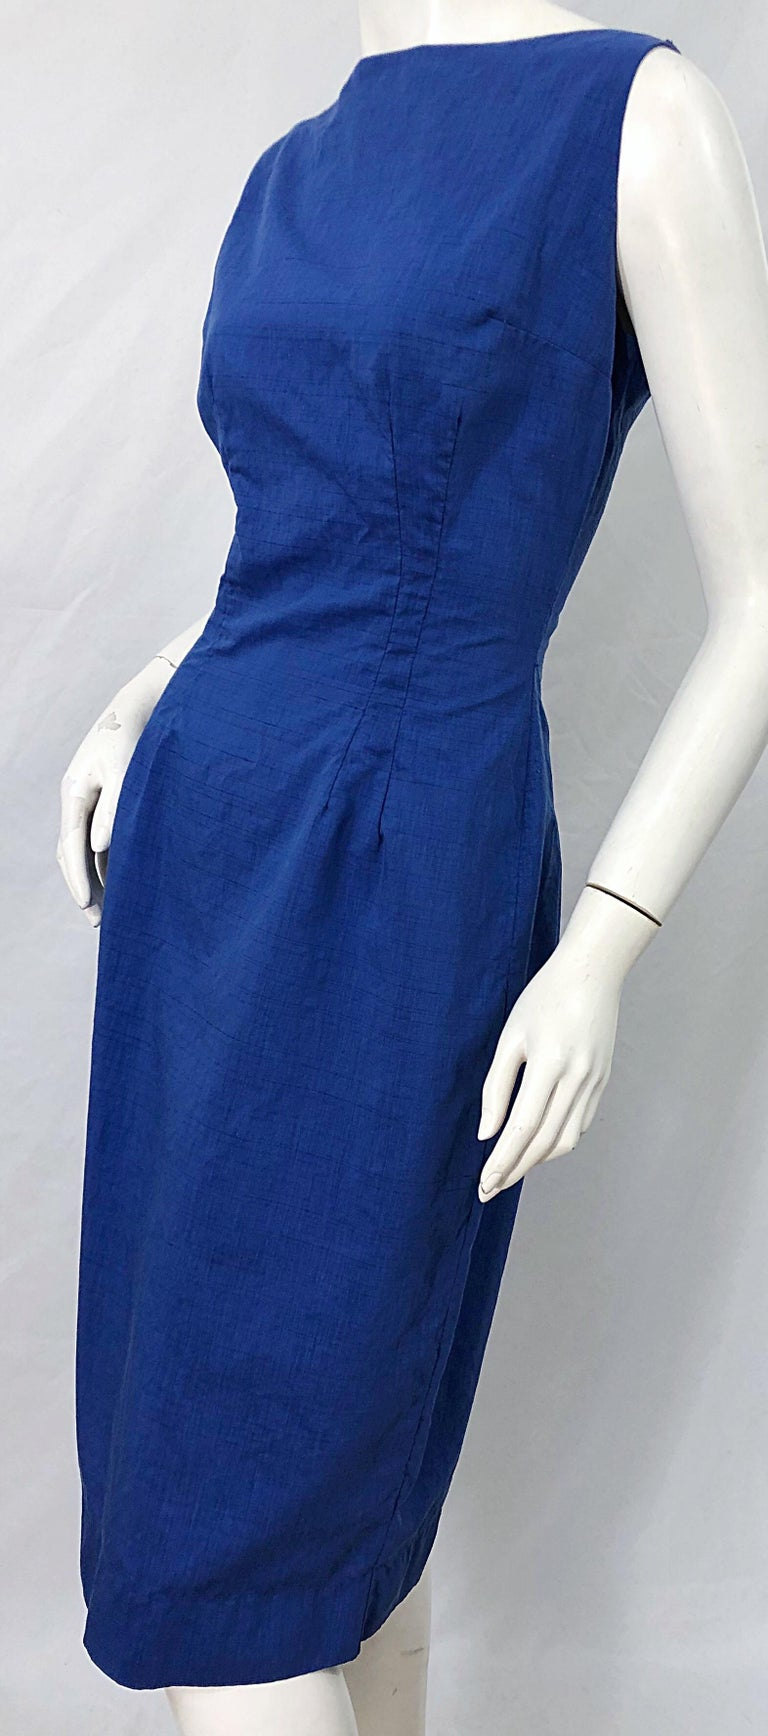 Chic 1950s Cobalt Blue Cotton High Neck Vintage 50s Sleeveless Wiggle Dress For Sale 4